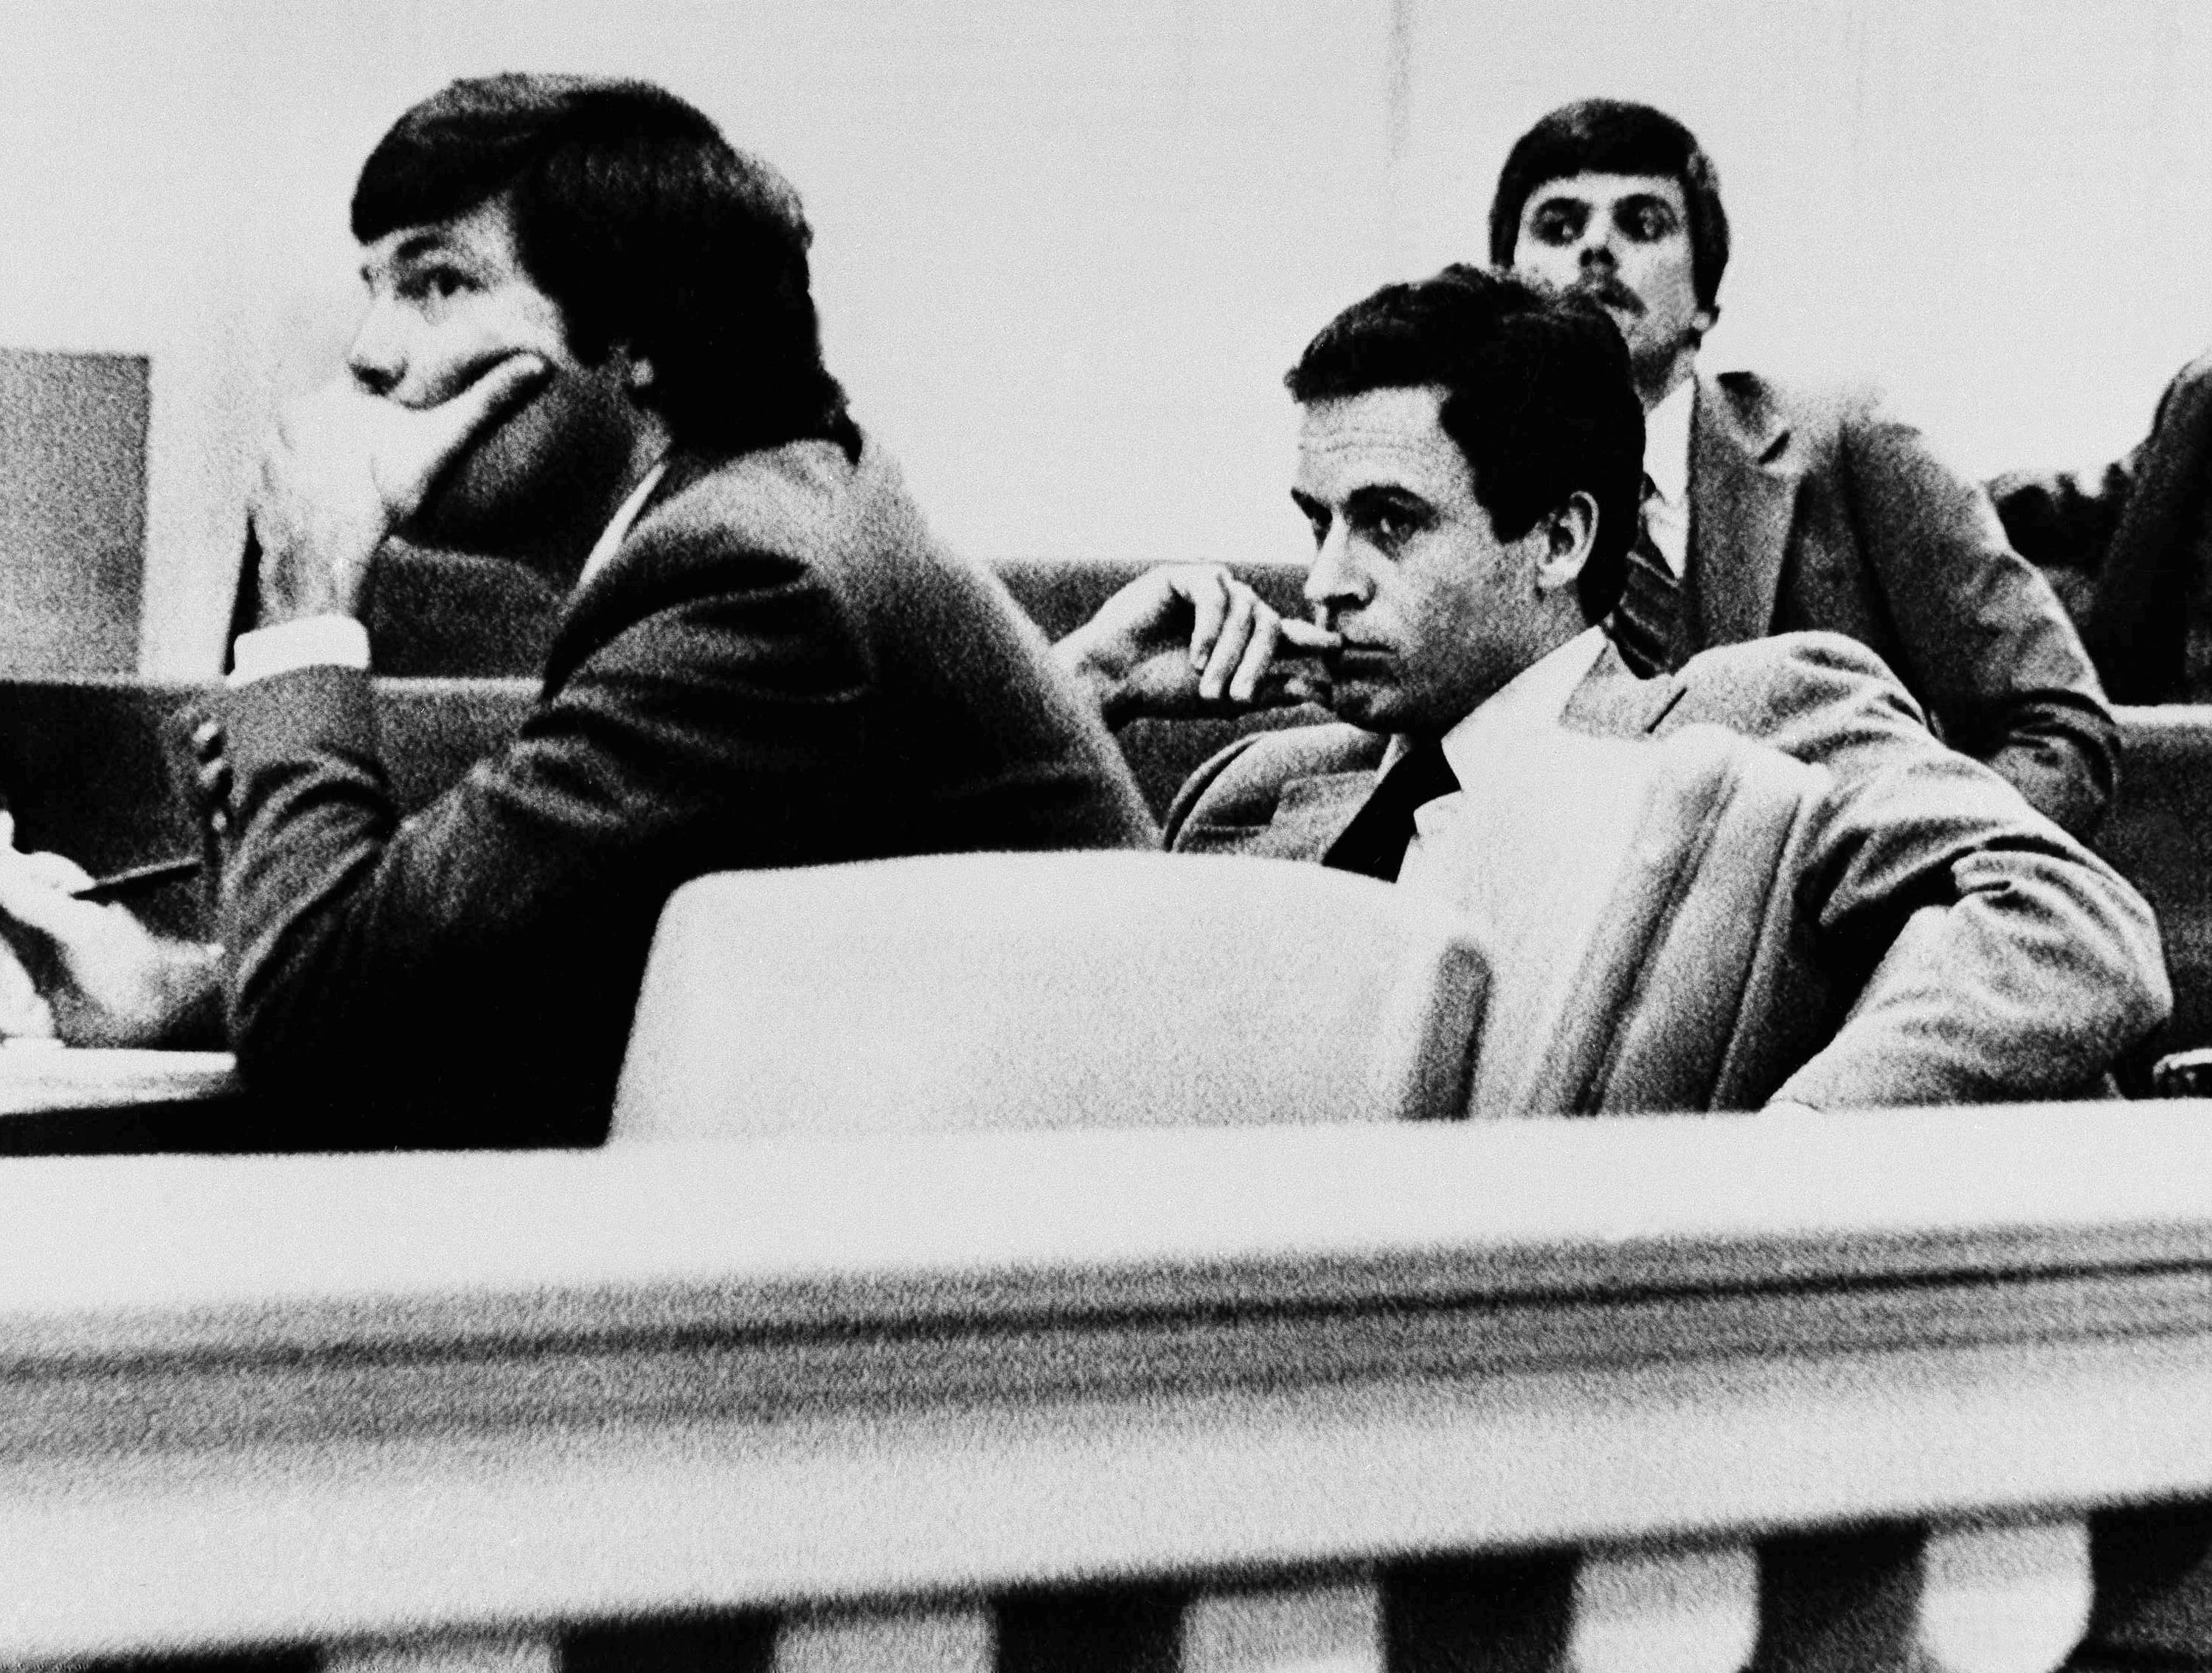 Theodore Bundy, right, listens intently with public defender Lynn Thompson, left, during examination of prospective jurors, Nov. 6, 1979 in Live Oak, Fla.  Bundy is accused of murdering 12-year-old Kimberly Leach who was abducted from her school in Lake City, Fla. in February of 1978.